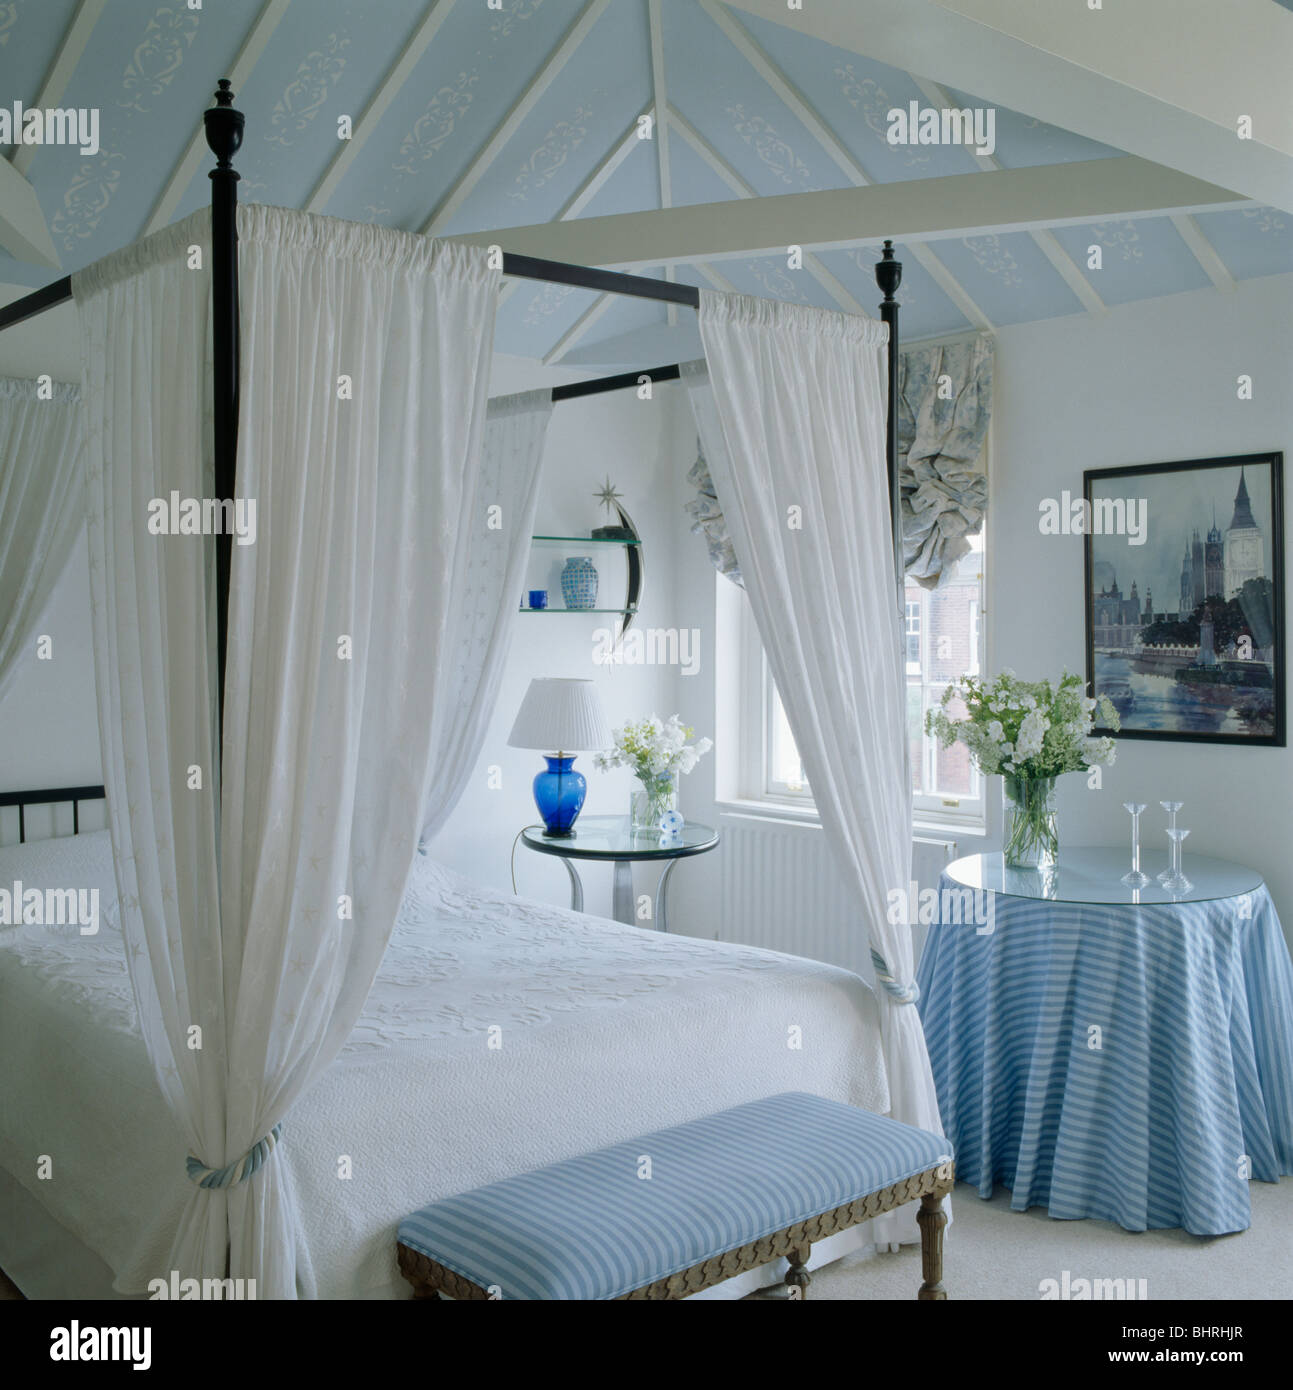 Bedroom ceiling drapes - Simple Four Poster Bed With White Drapes In White Bedroom With Blue Stool And Small Table With Blue Cloth Below Blue Ceiling